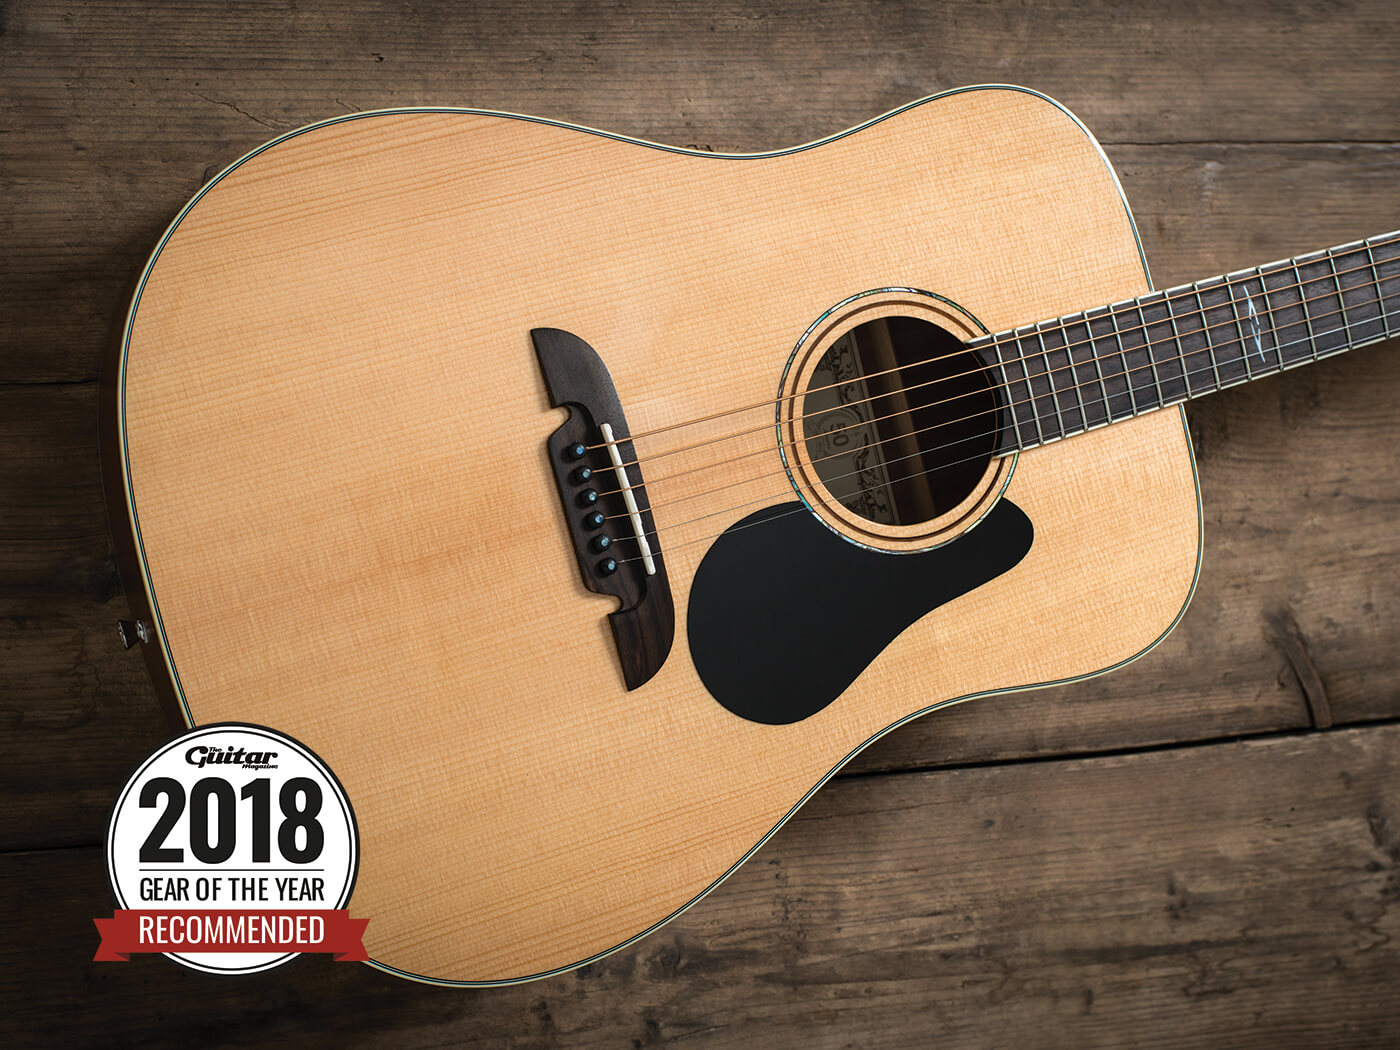 Gear of the Year 2018: Best affordable acoustic guitars